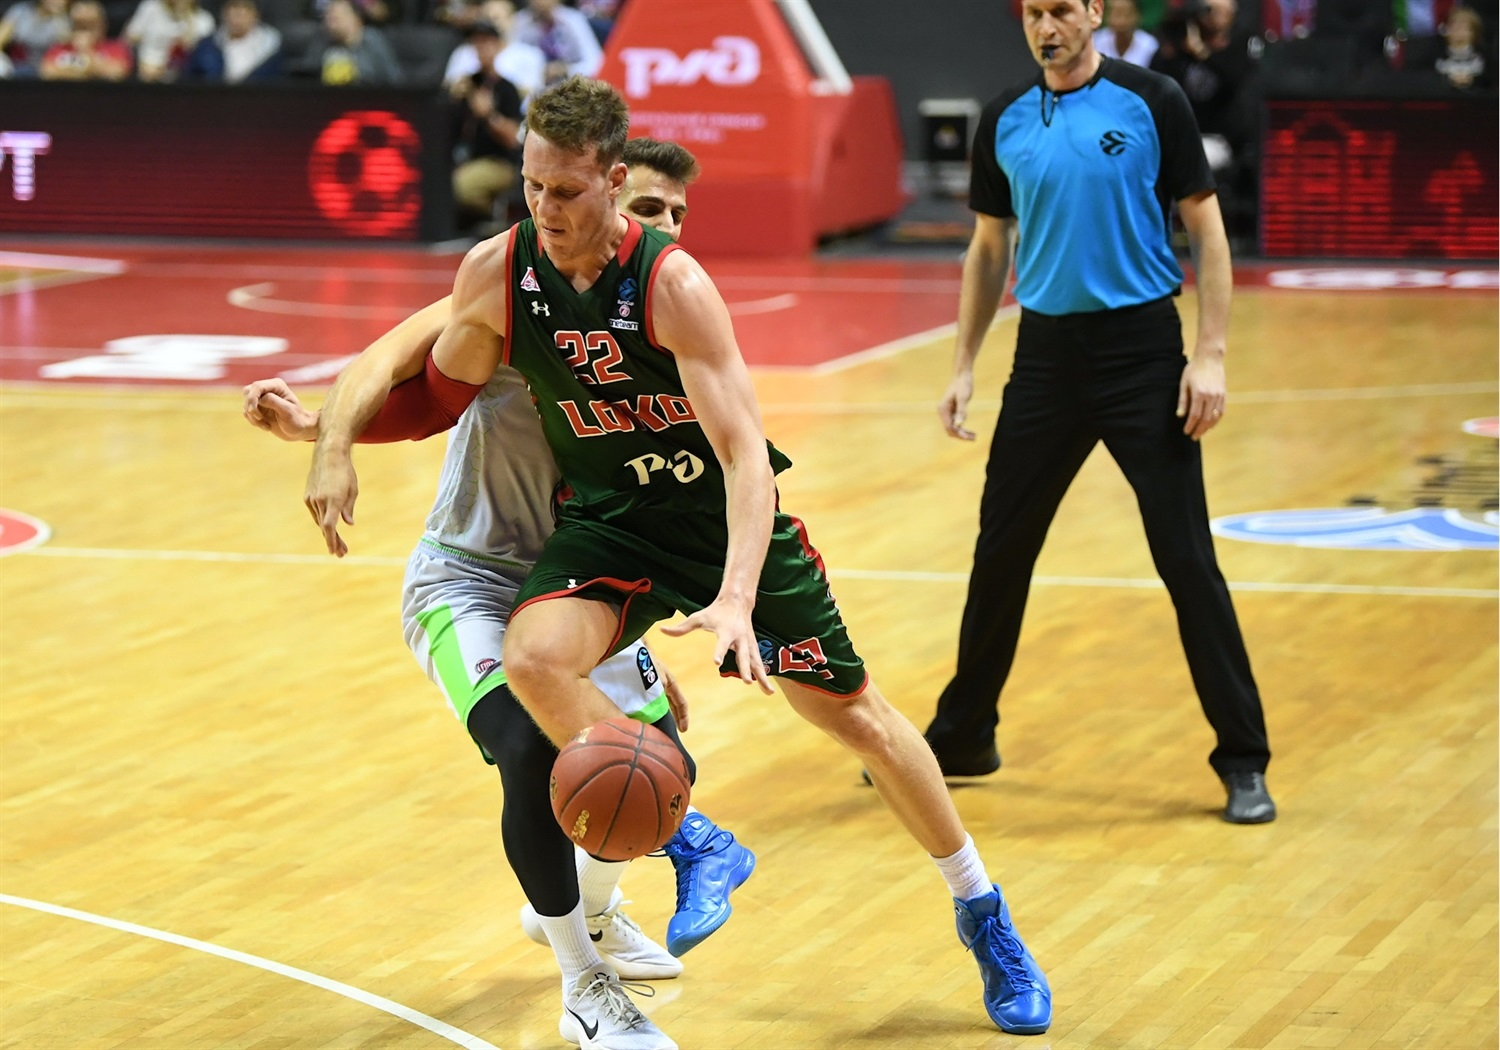 Dmitry Kulagin - Lokomotiv Kuban Krasnodar (photo Tofas) - EC18